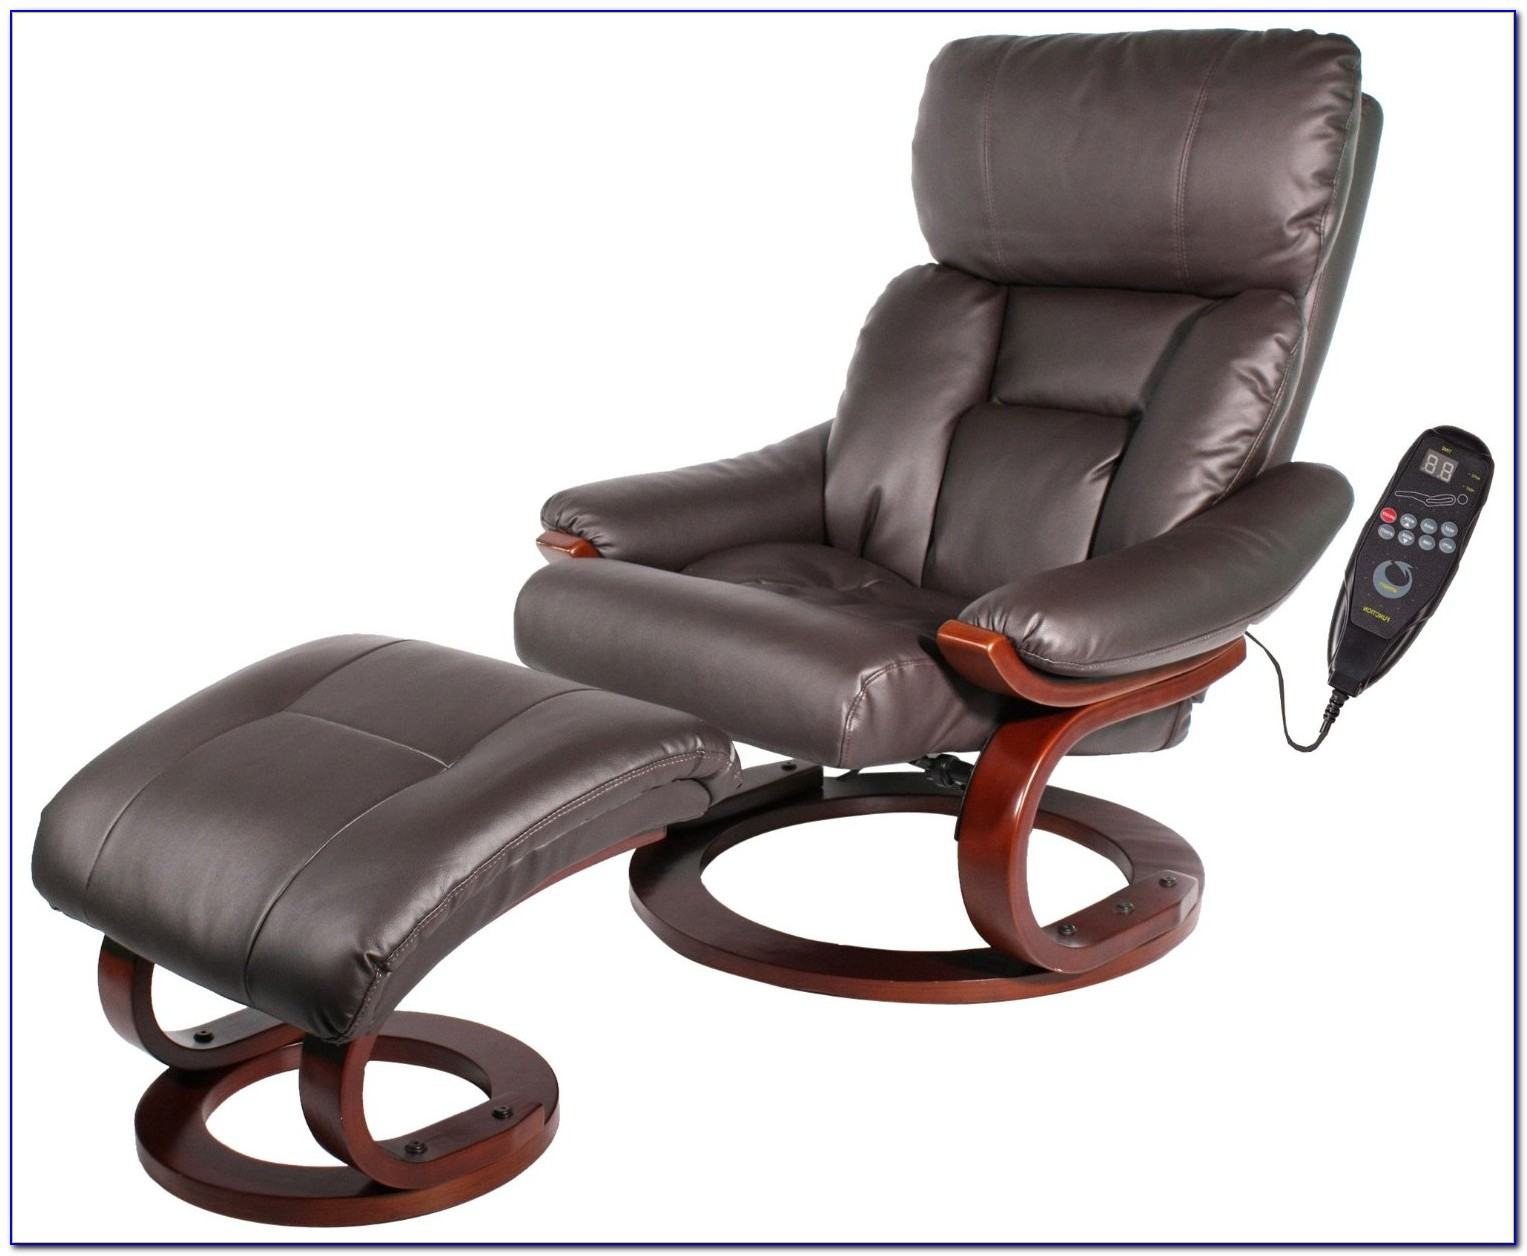 Massage Recliner Chairs Sears